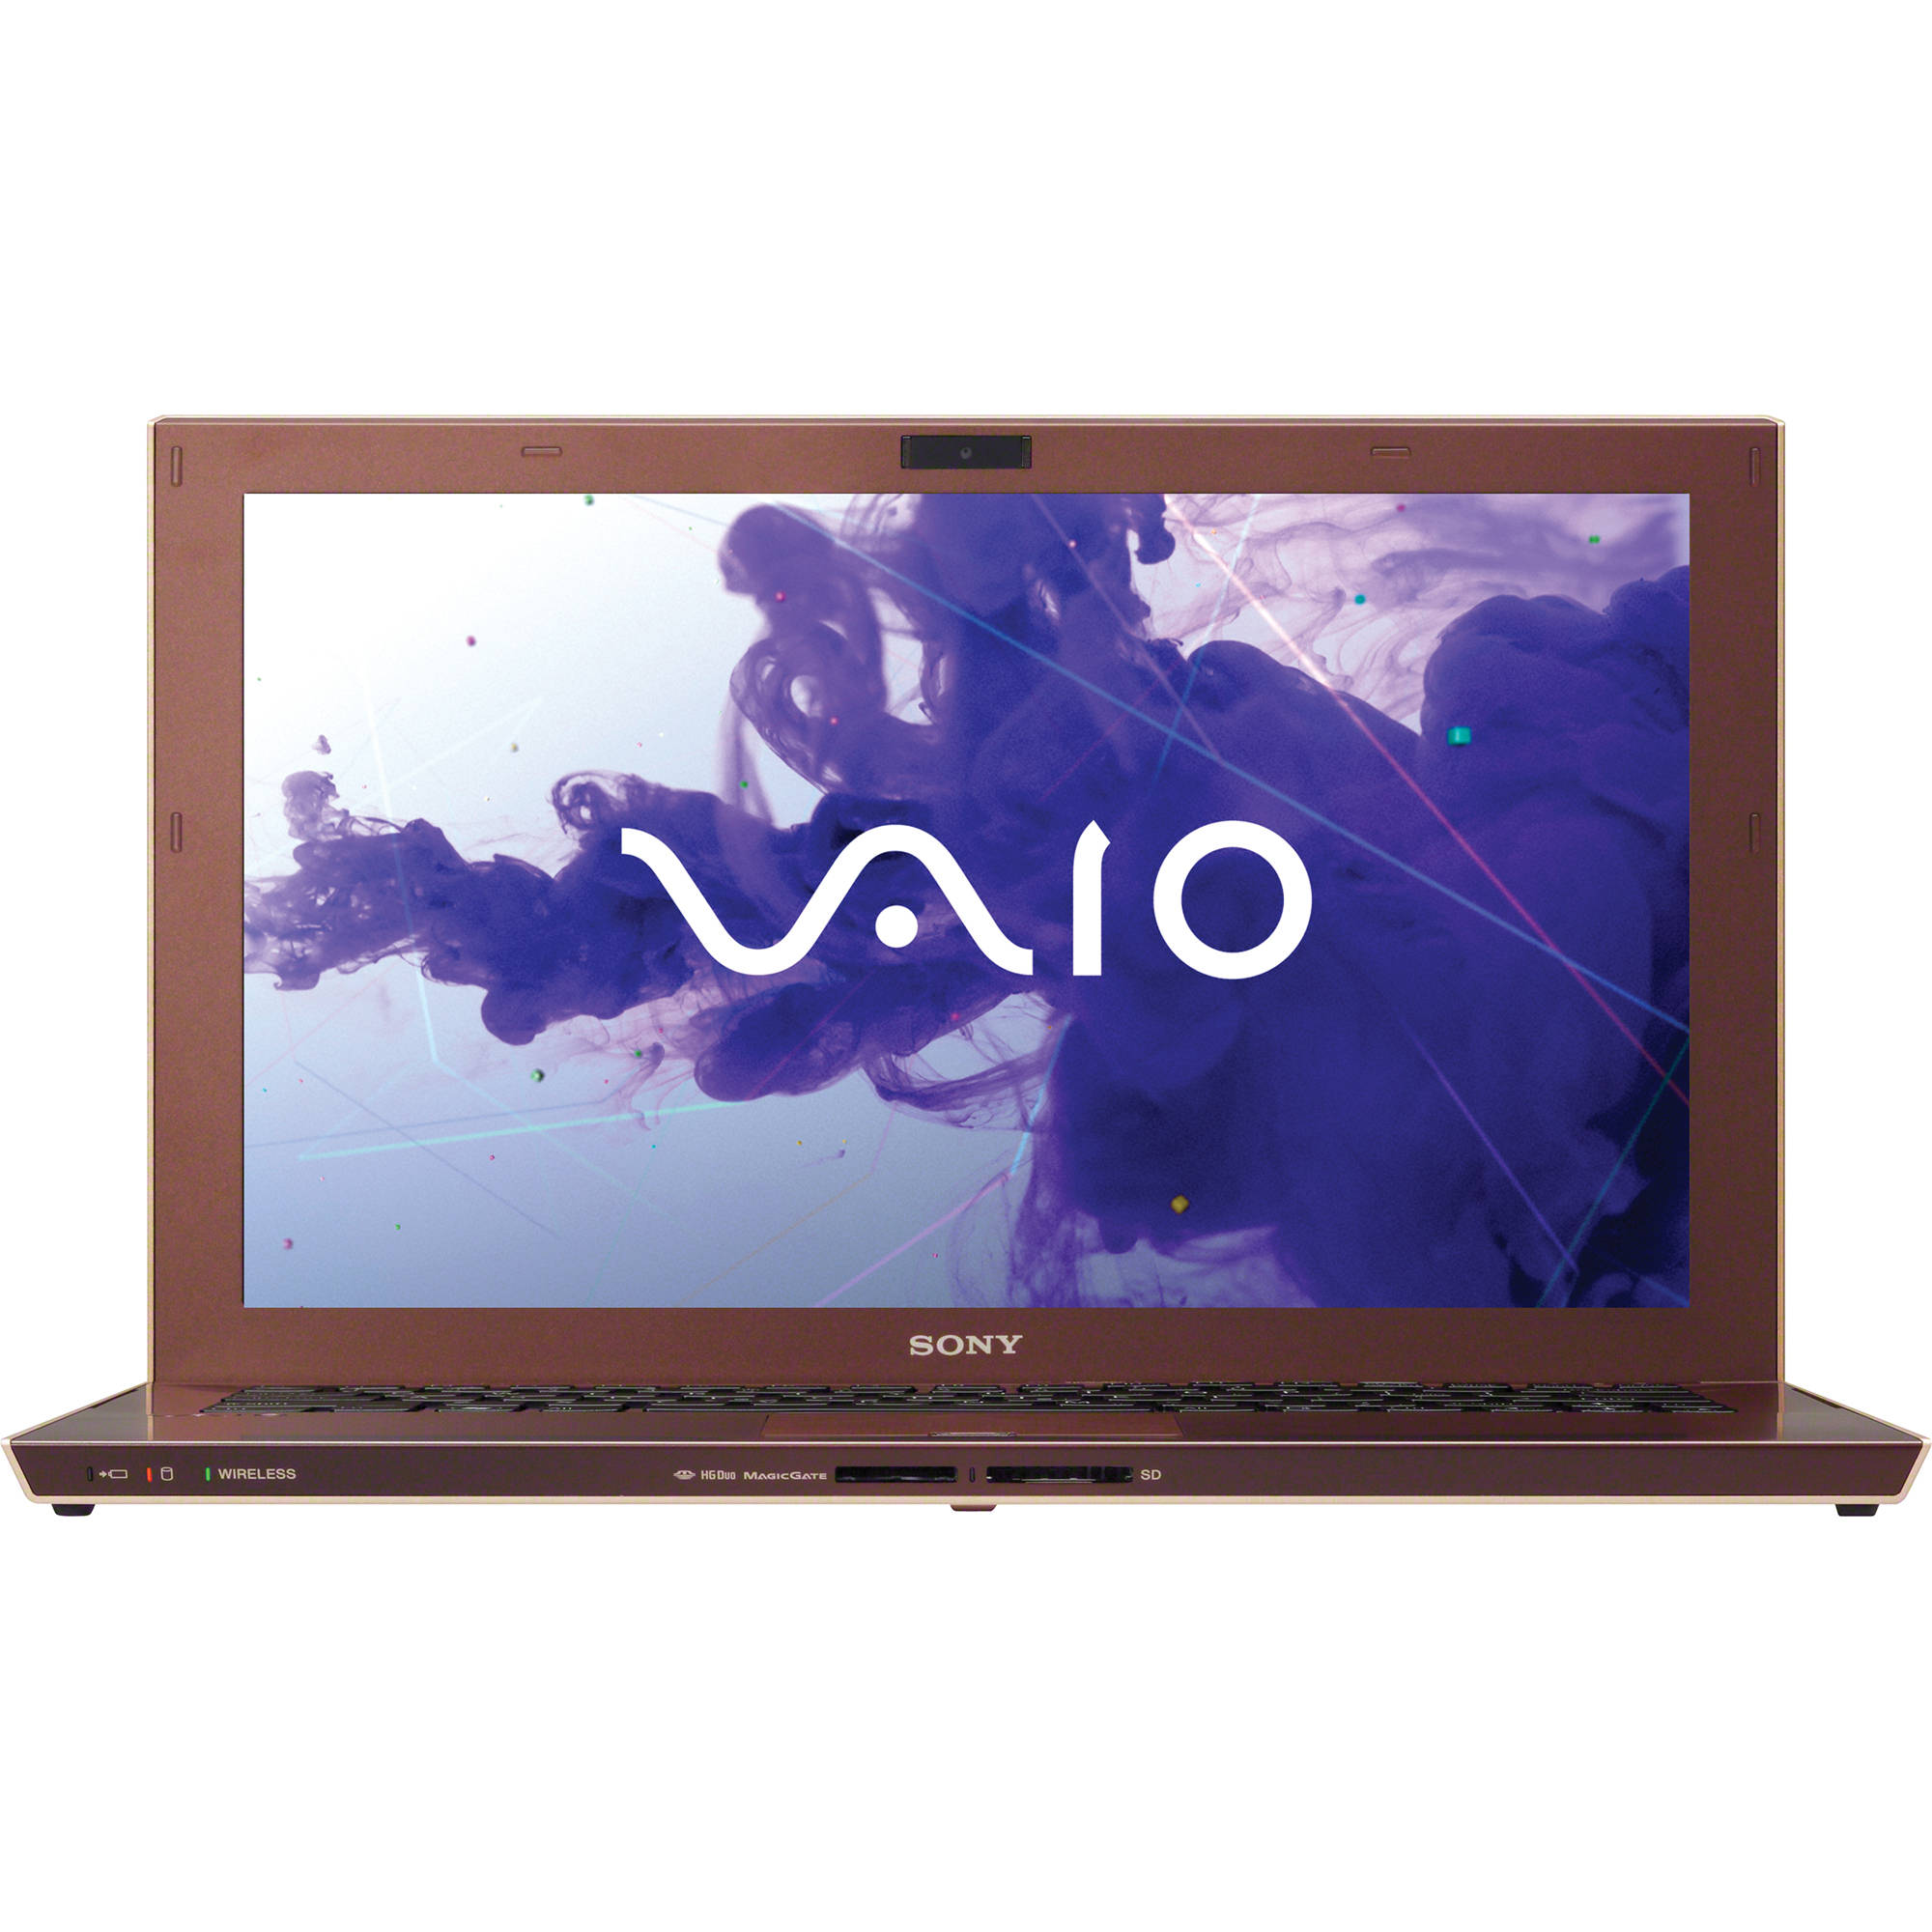 SONY VAIO VPCZ22UGXN NOTEBOOK SMART NETWORK DRIVER FOR WINDOWS